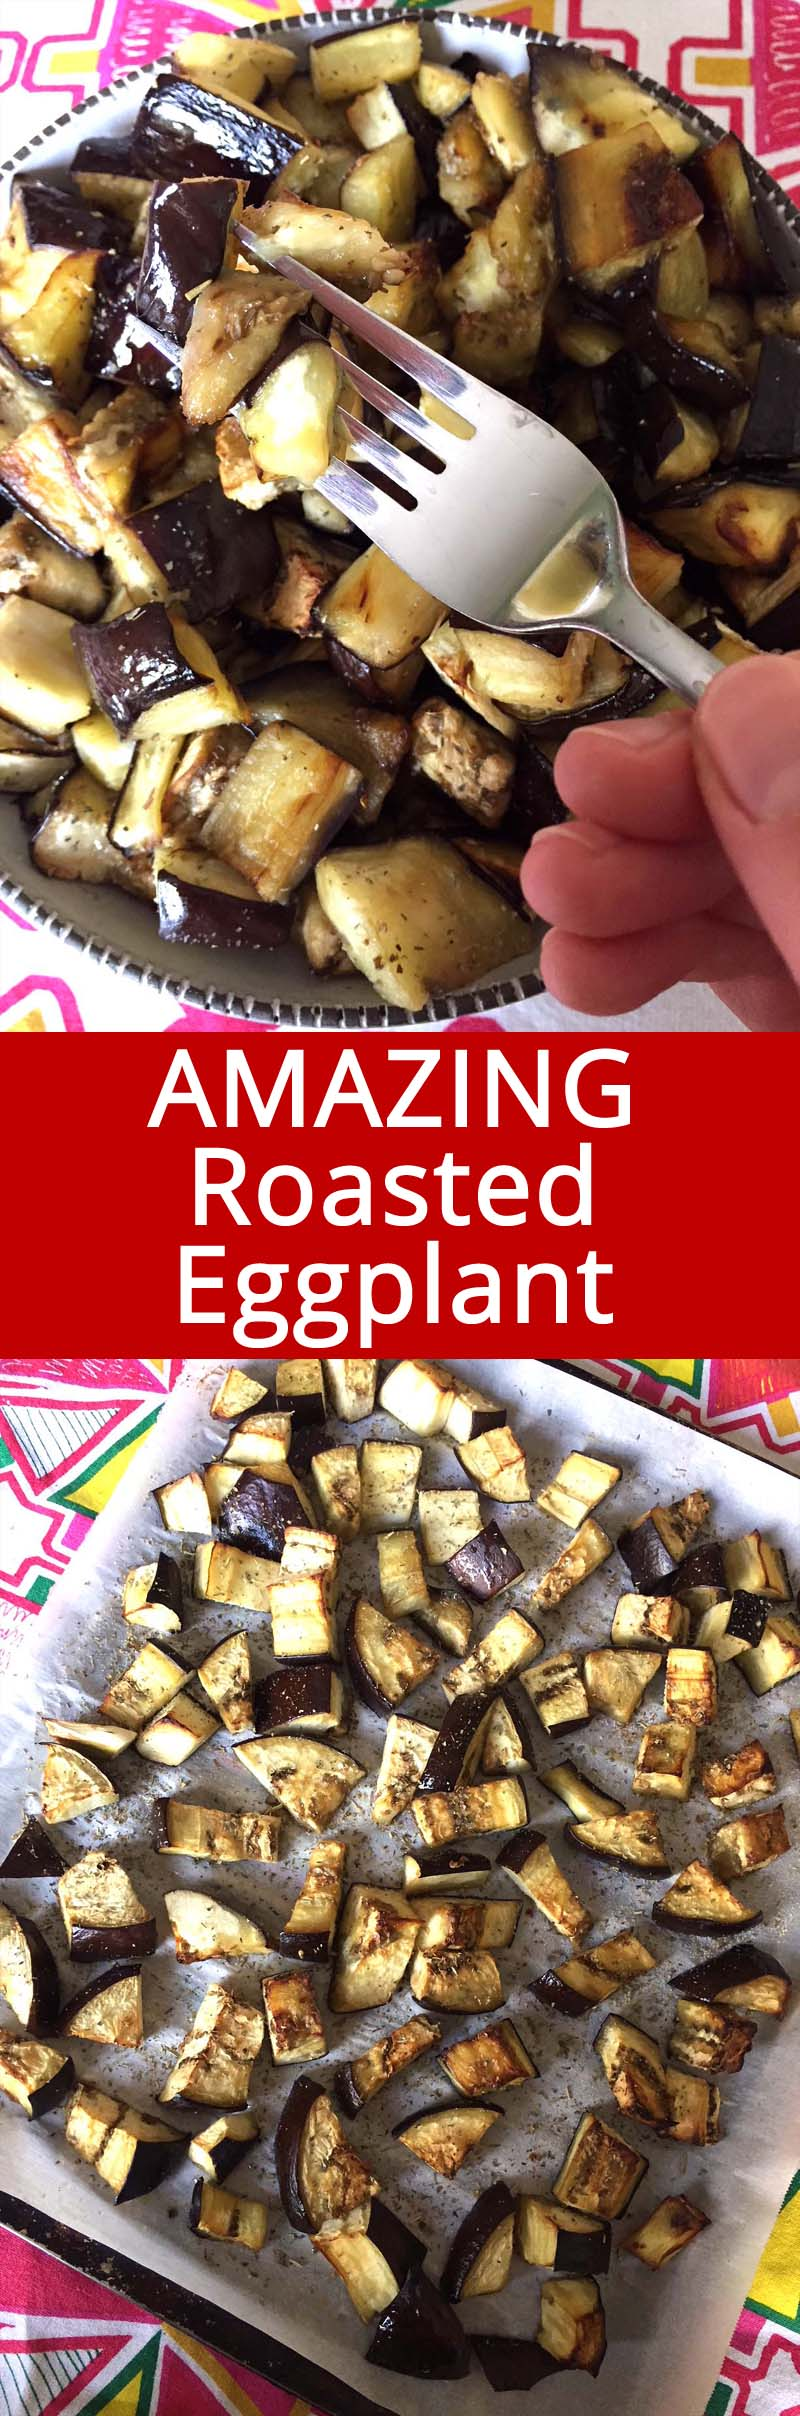 These roasted eggplant cubes are so easy to make, healthy and yummy! I love oven roasted eggplant!